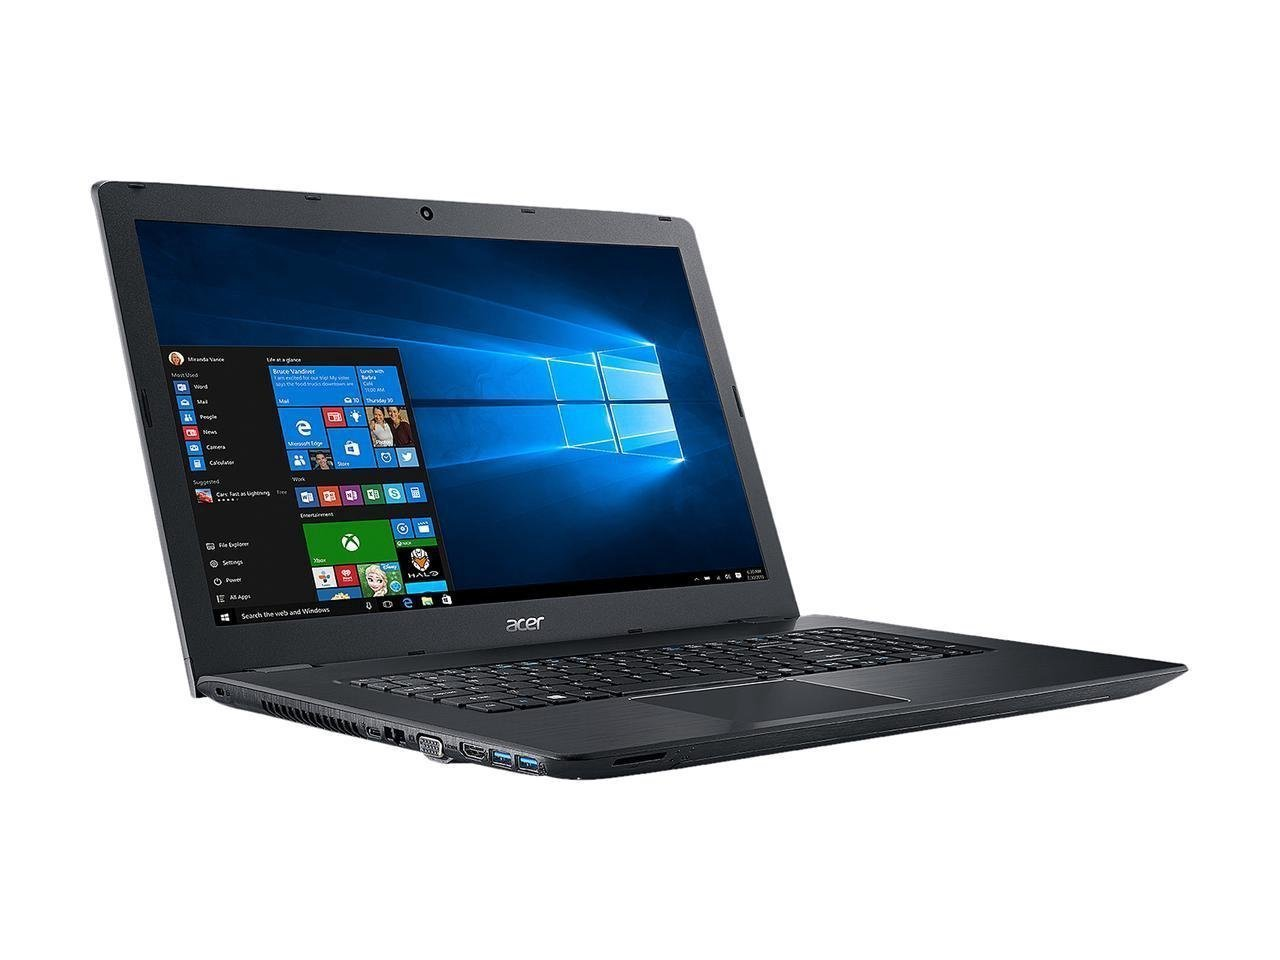 Acer Aspire E5-774G Intel Bluetooth XP